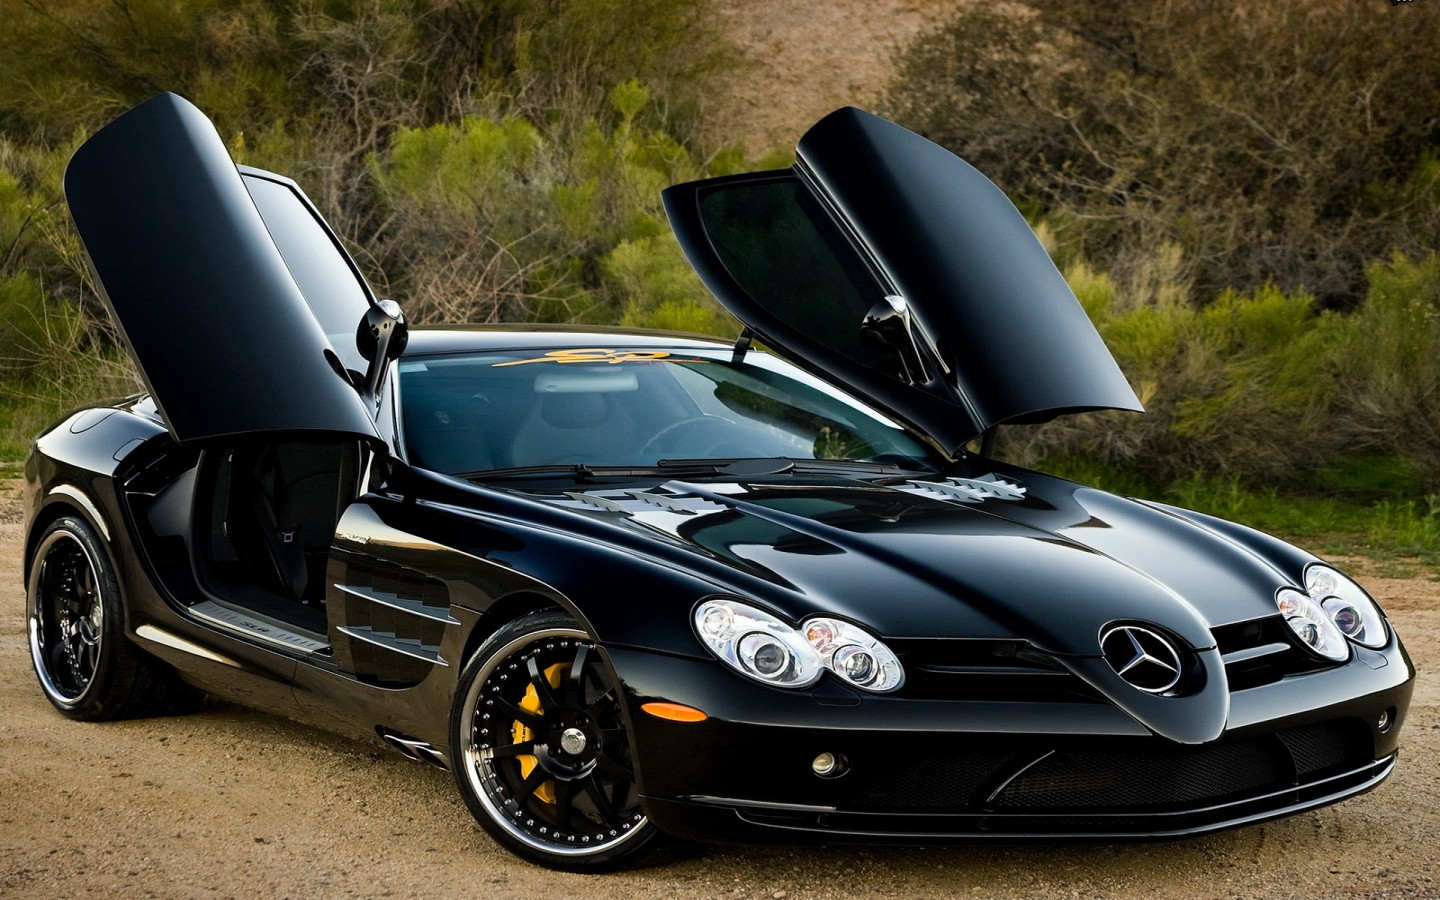 Mercedes benz usa hd wallpaper cars wallpapers hd for Mercedes benz cars images